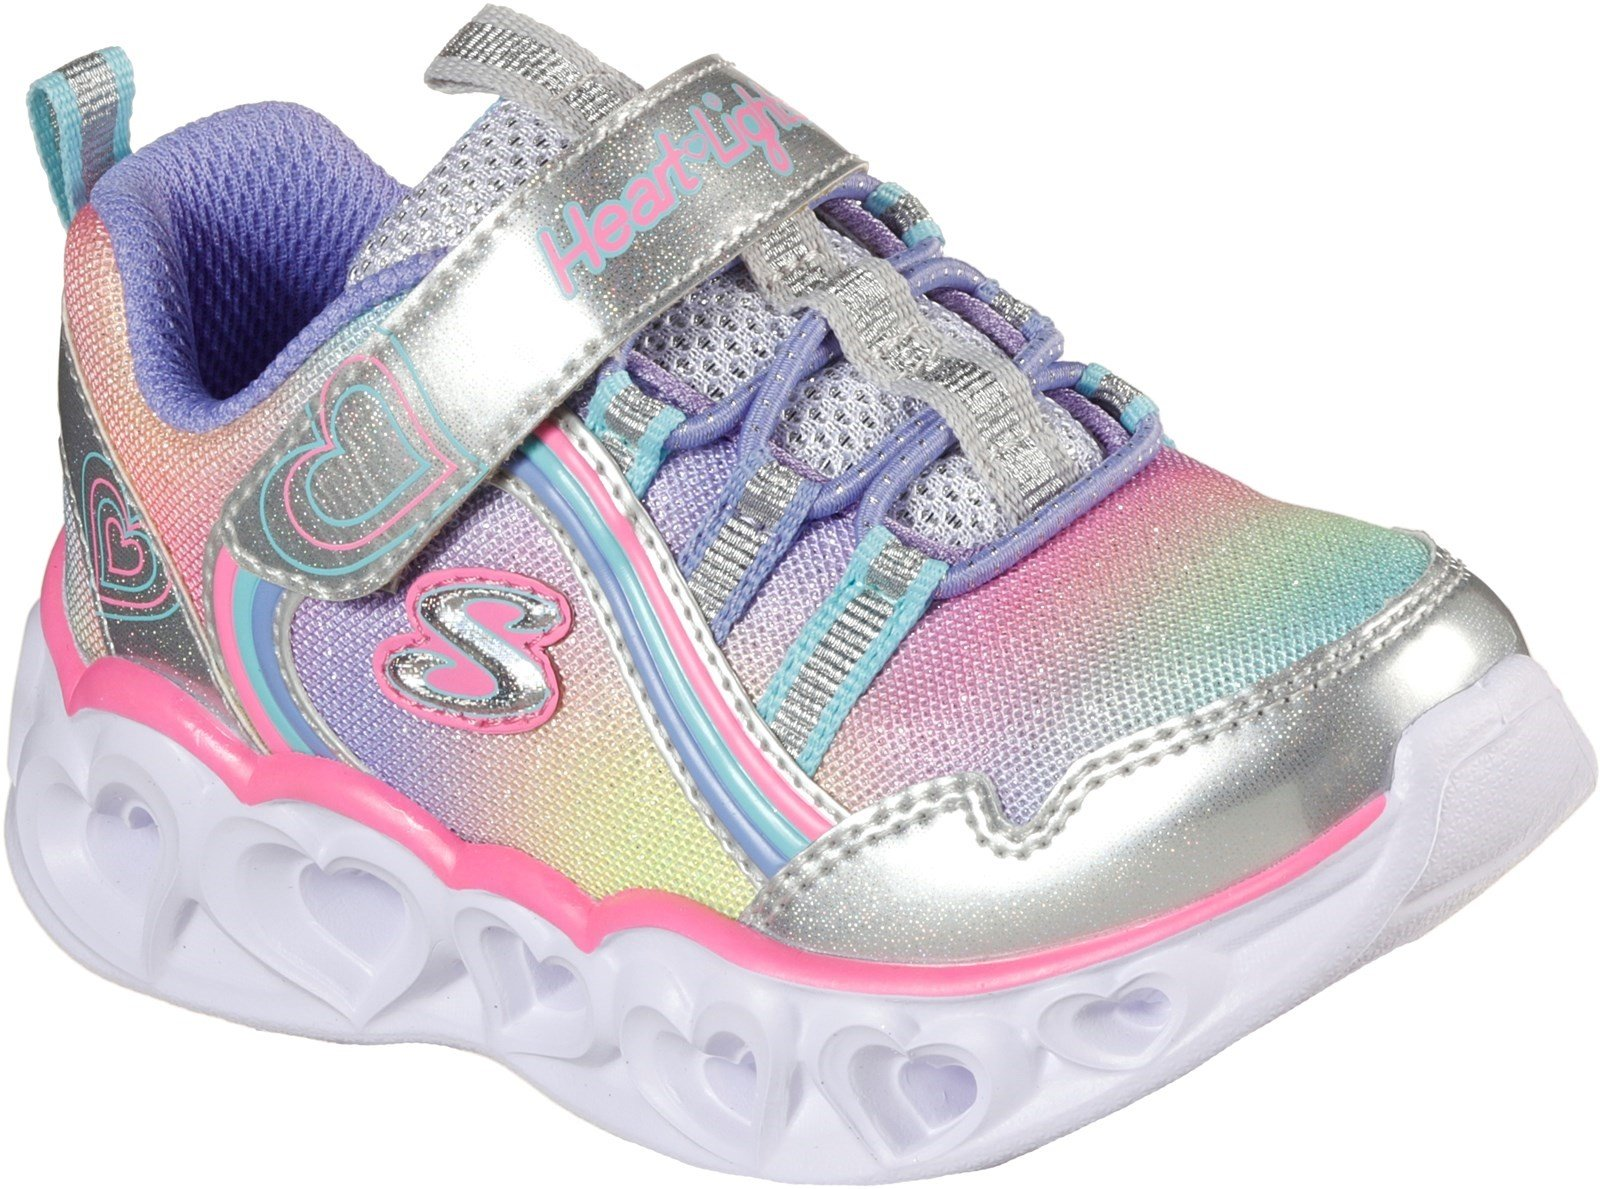 Skechers Kid's Heart Lights Rainbow Lux Trainer Various Colours 32081 - Silver/Multicoloured 4